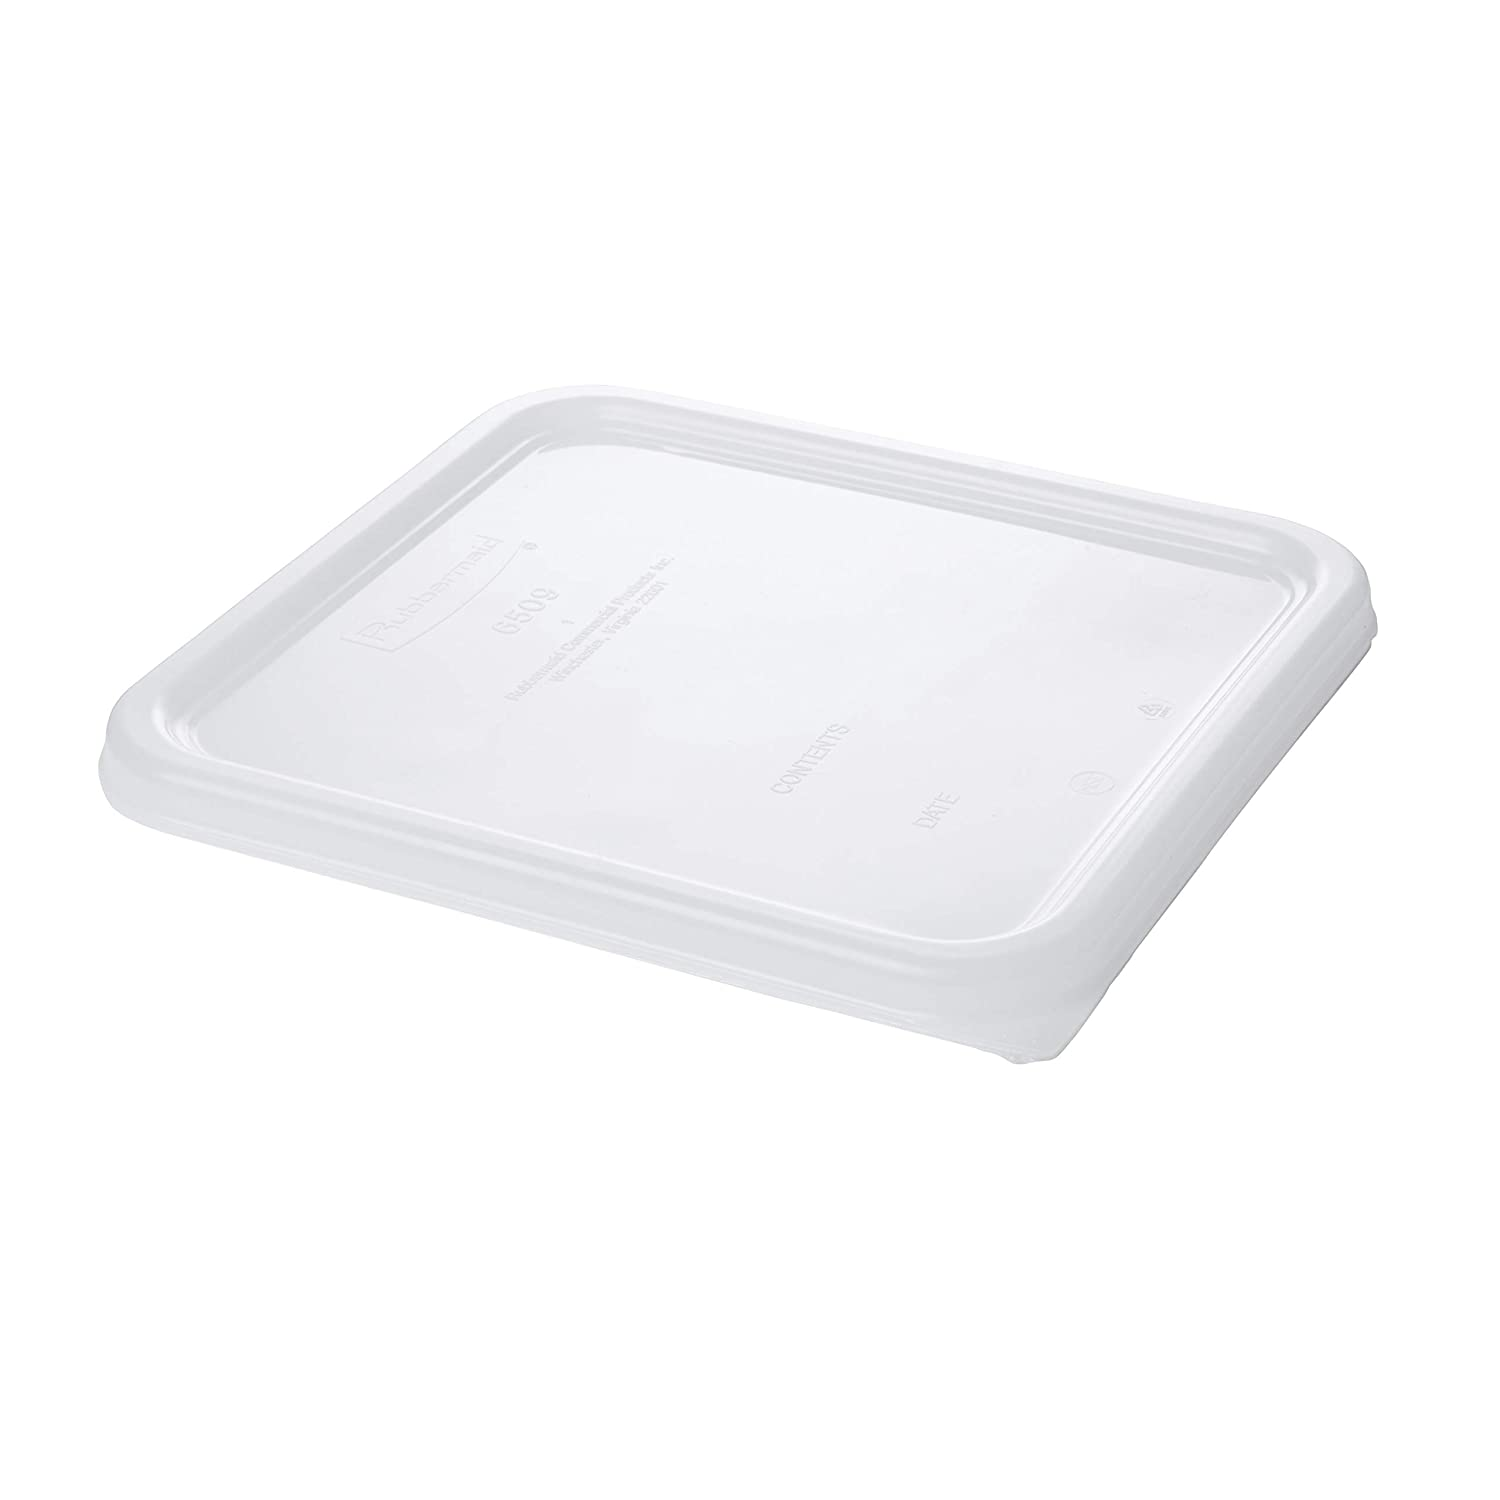 Rubbermaid Commercial Products Small Lid For 2, 4, 6, And 8 Qt. Plastic Space Saving Square Food Storage Container (Fg650900Wht)